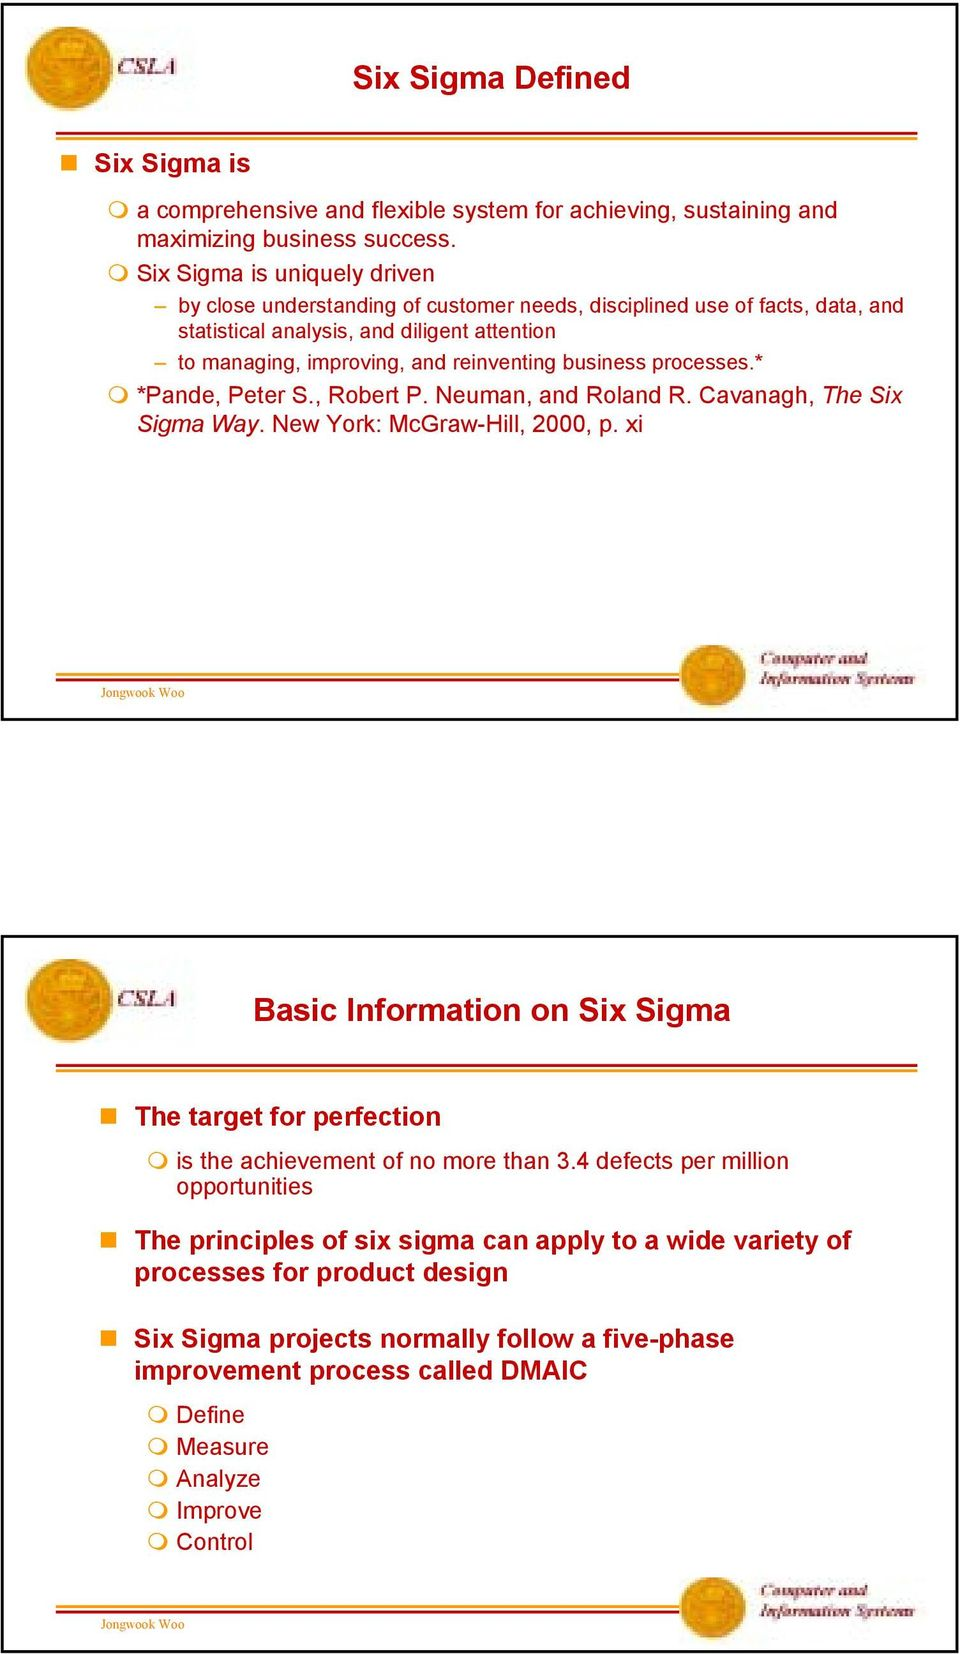 business processes.* *Pande, Peter S., Robert P. Neuman, and Roland R. Cavanagh, The Six Sigma Way. New York: McGraw-Hill, 2000, p.